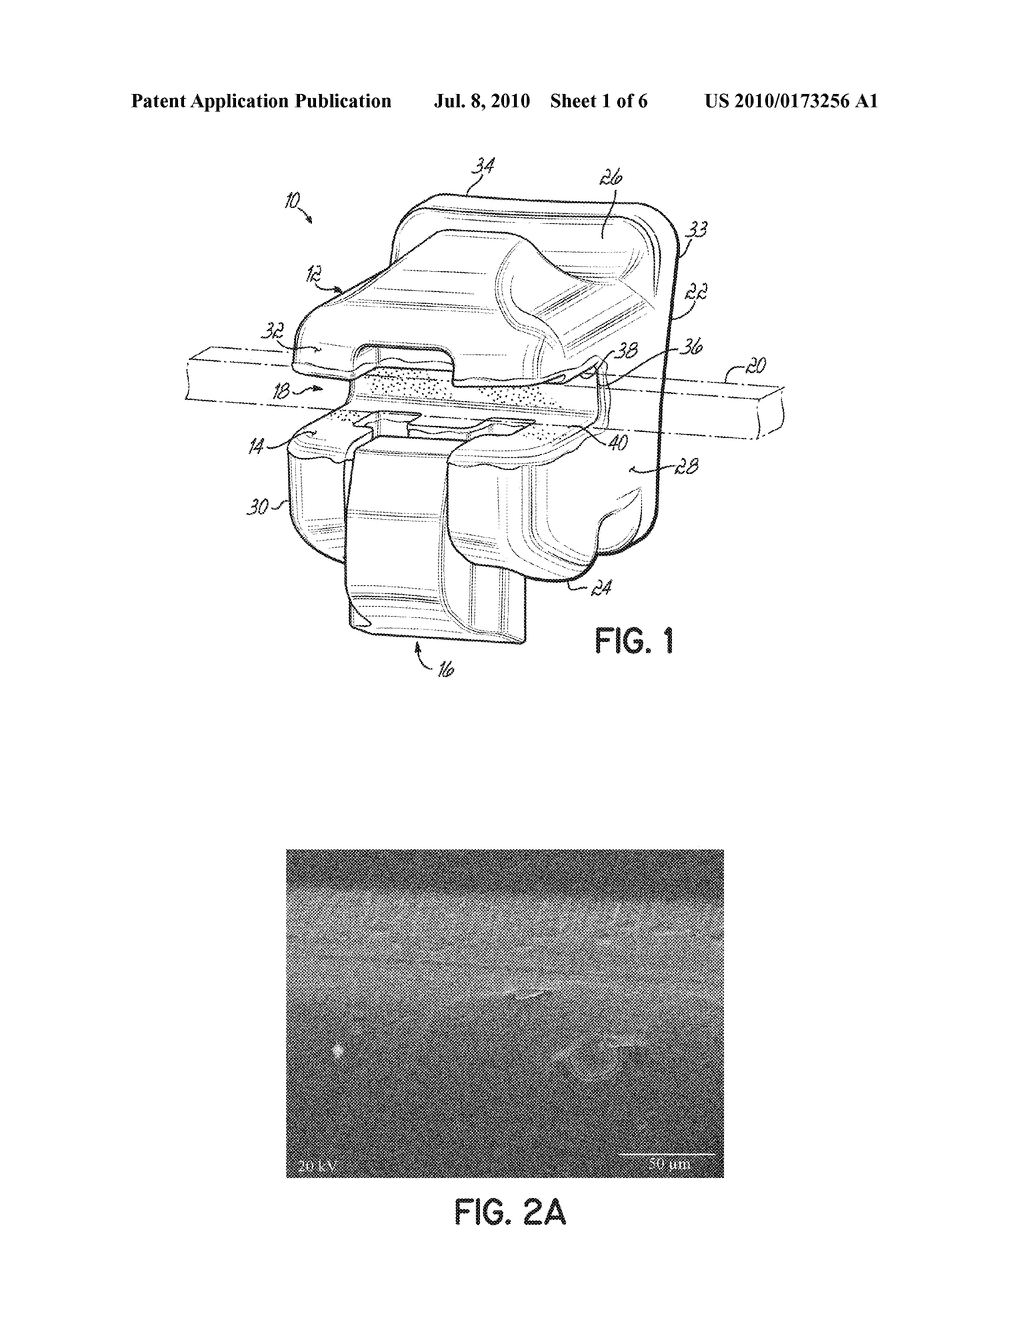 Surface Treated Polycrystalline Ceramic Orthodontic Bracket and Method of Making Same - diagram, schematic, and image 02